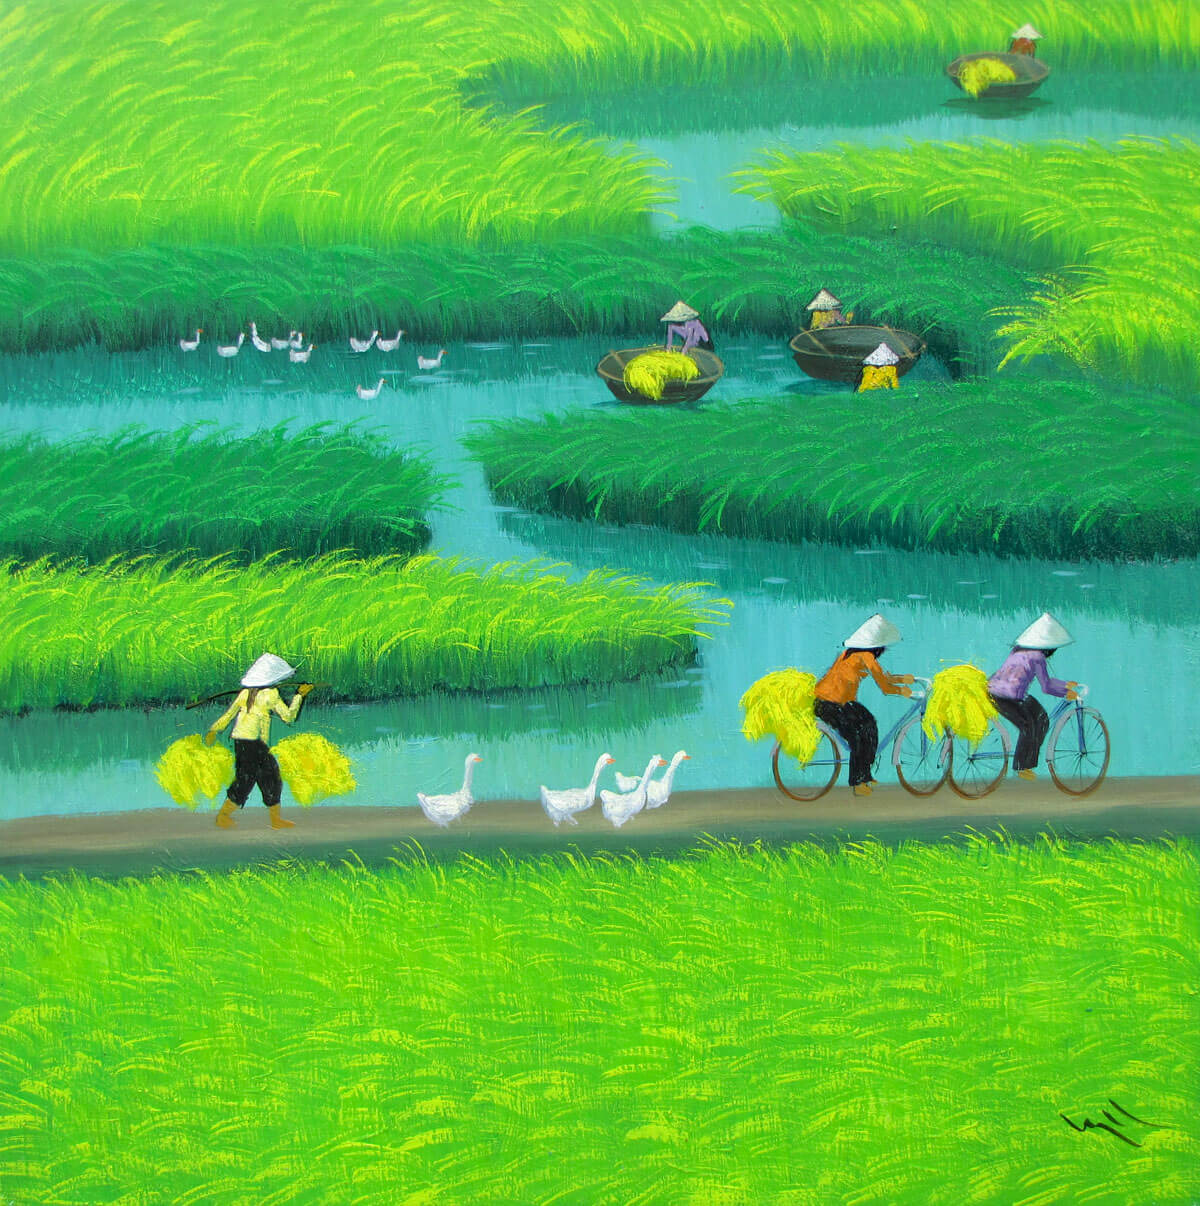 Paddy field-Vietnamese Painting